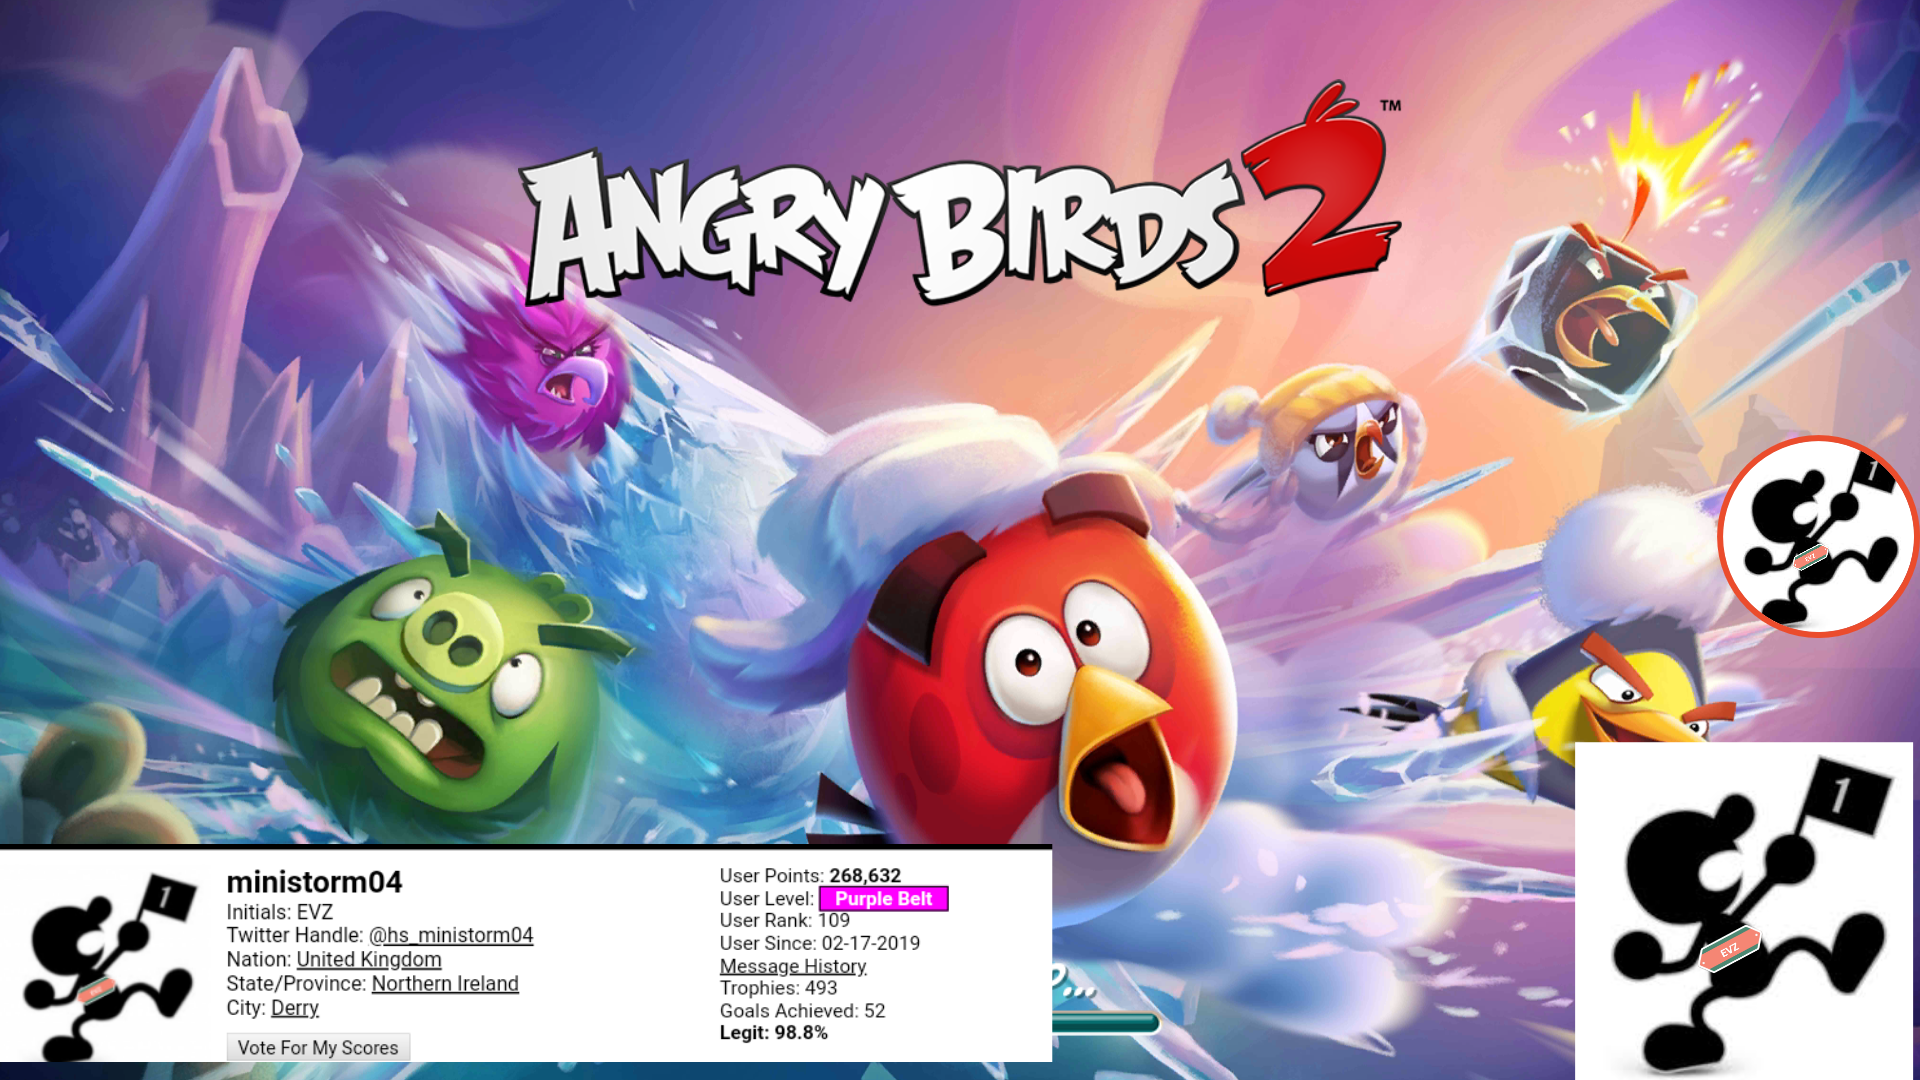 ministorm04: Angry Birds 2: Level 4 (Android) 201,021 points on 2019-07-08 07:35:58